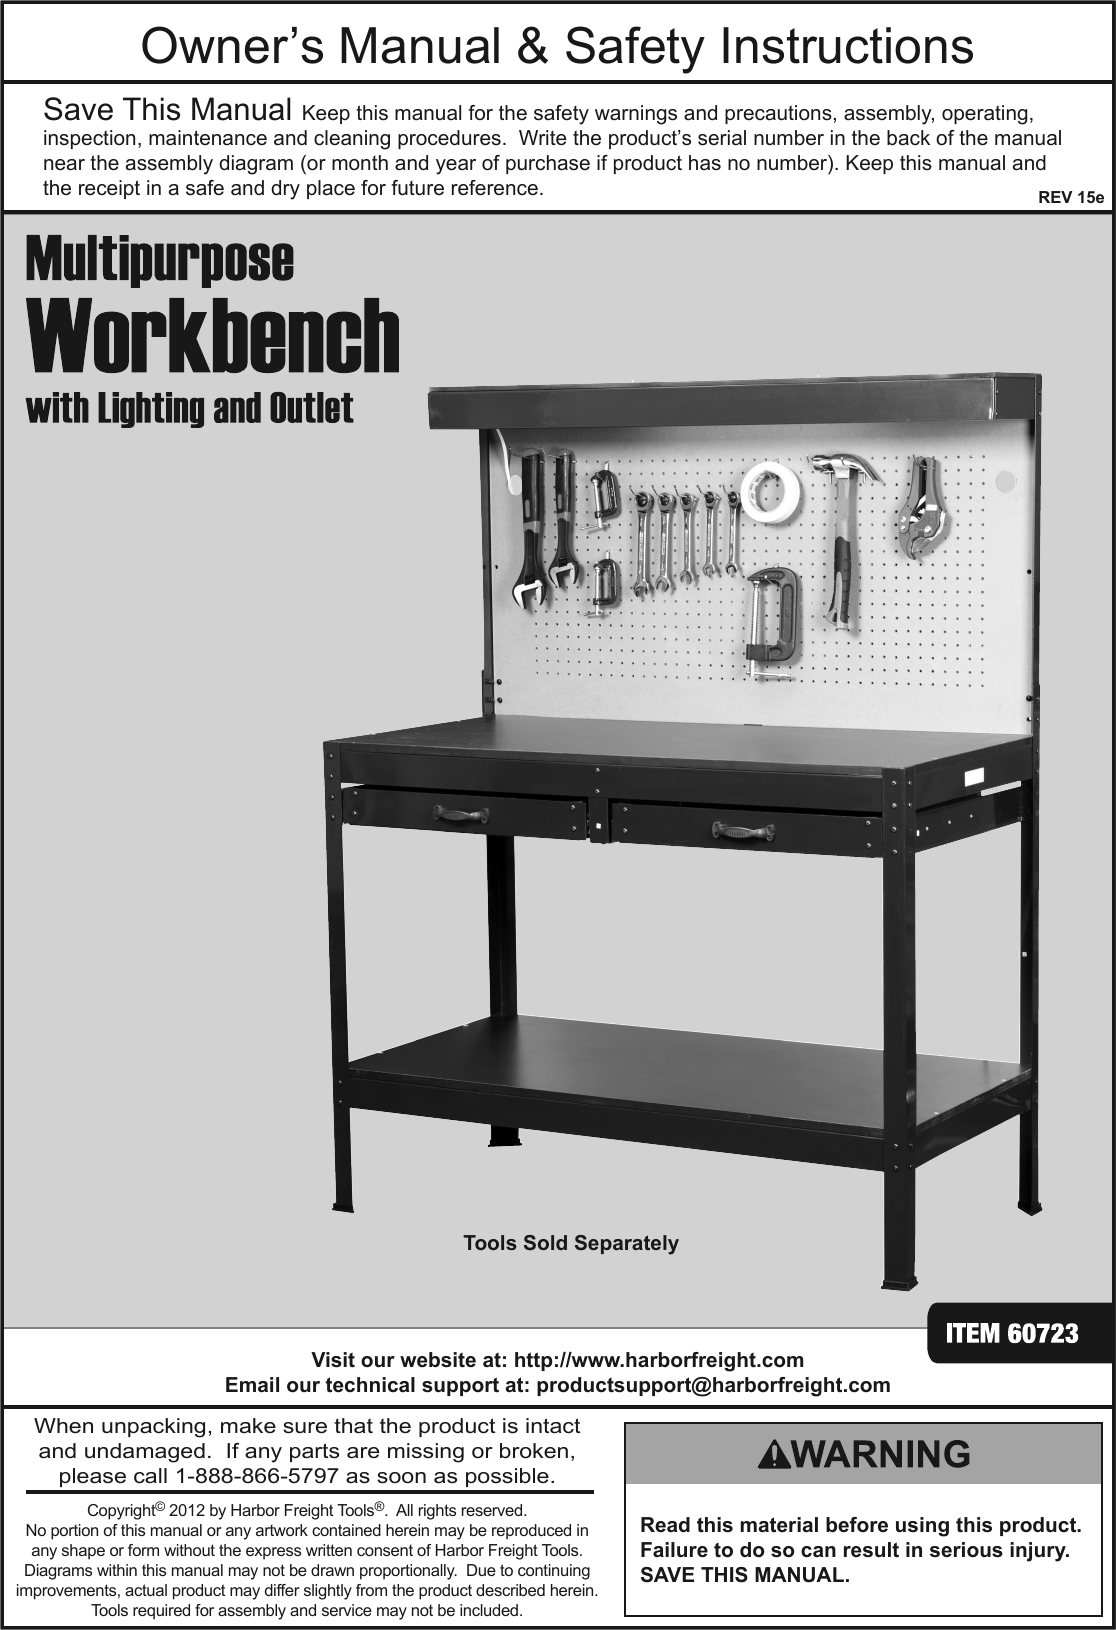 Harbor freight mobile workbench rv curved shower curtain track